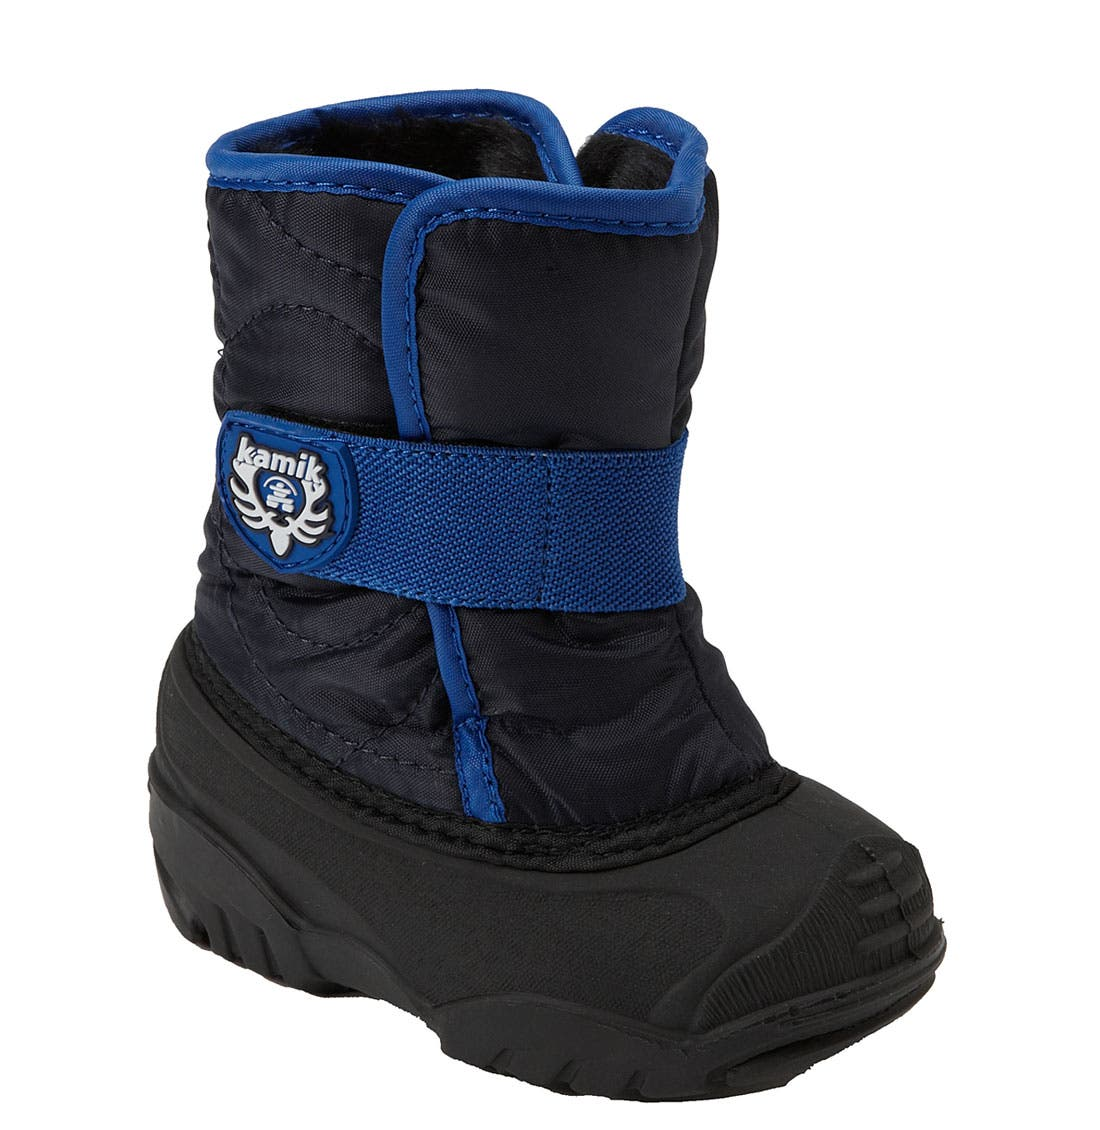 Main Image - Kamik 'Snowbug' Waterproof Boot (Walker & Toddler)